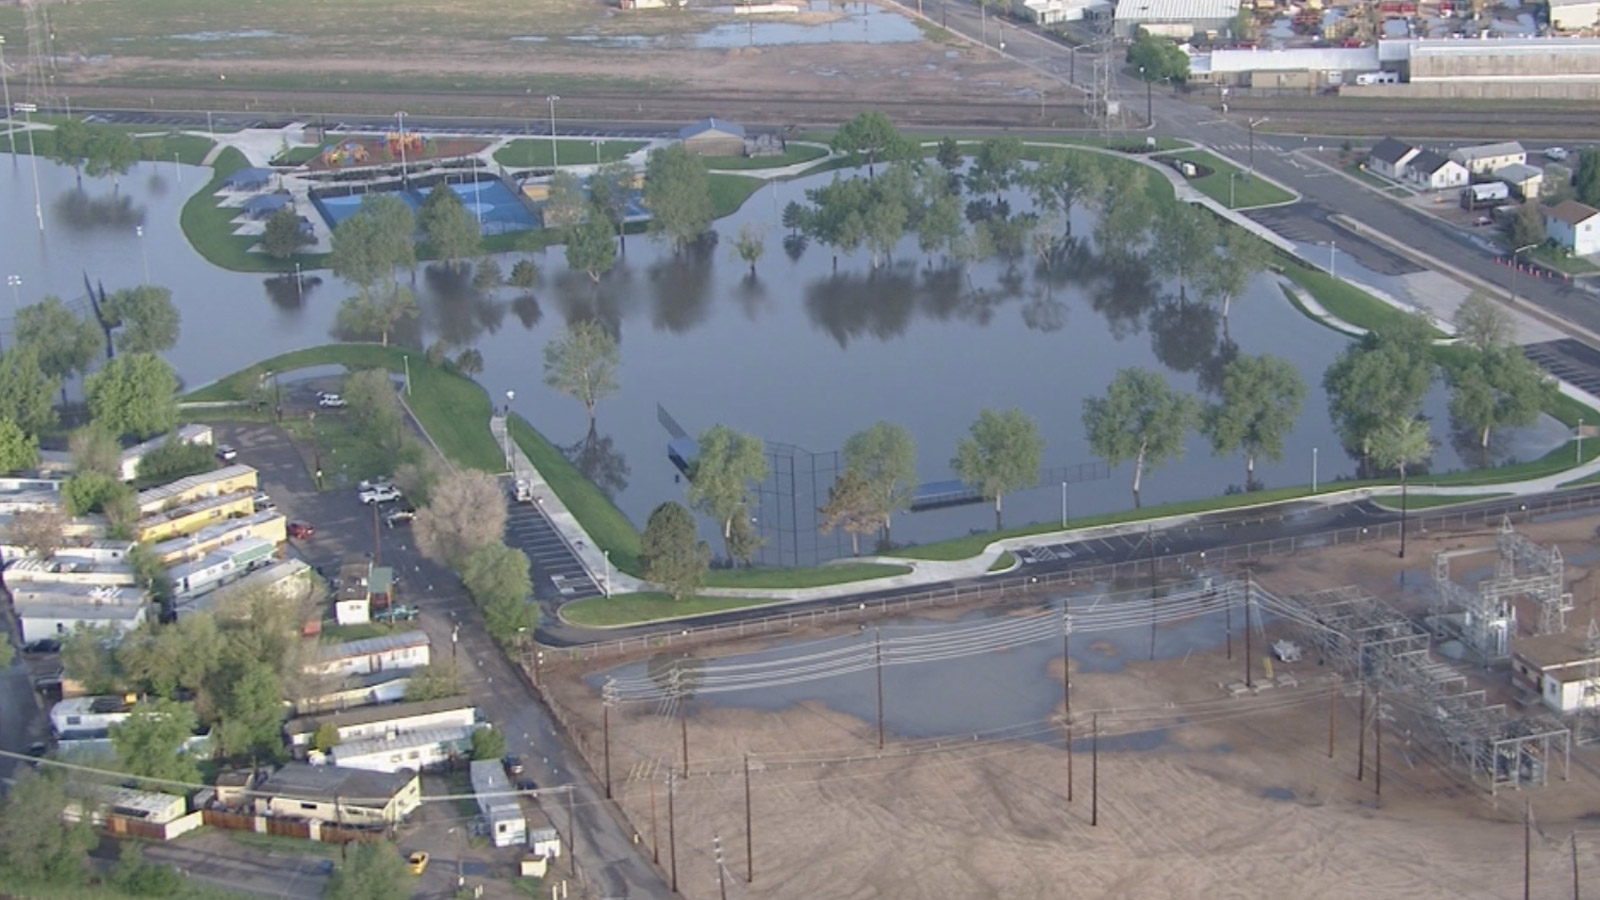 Copter4 flew over flooding at Fairfax Park in Commerce City (credit: CBS)